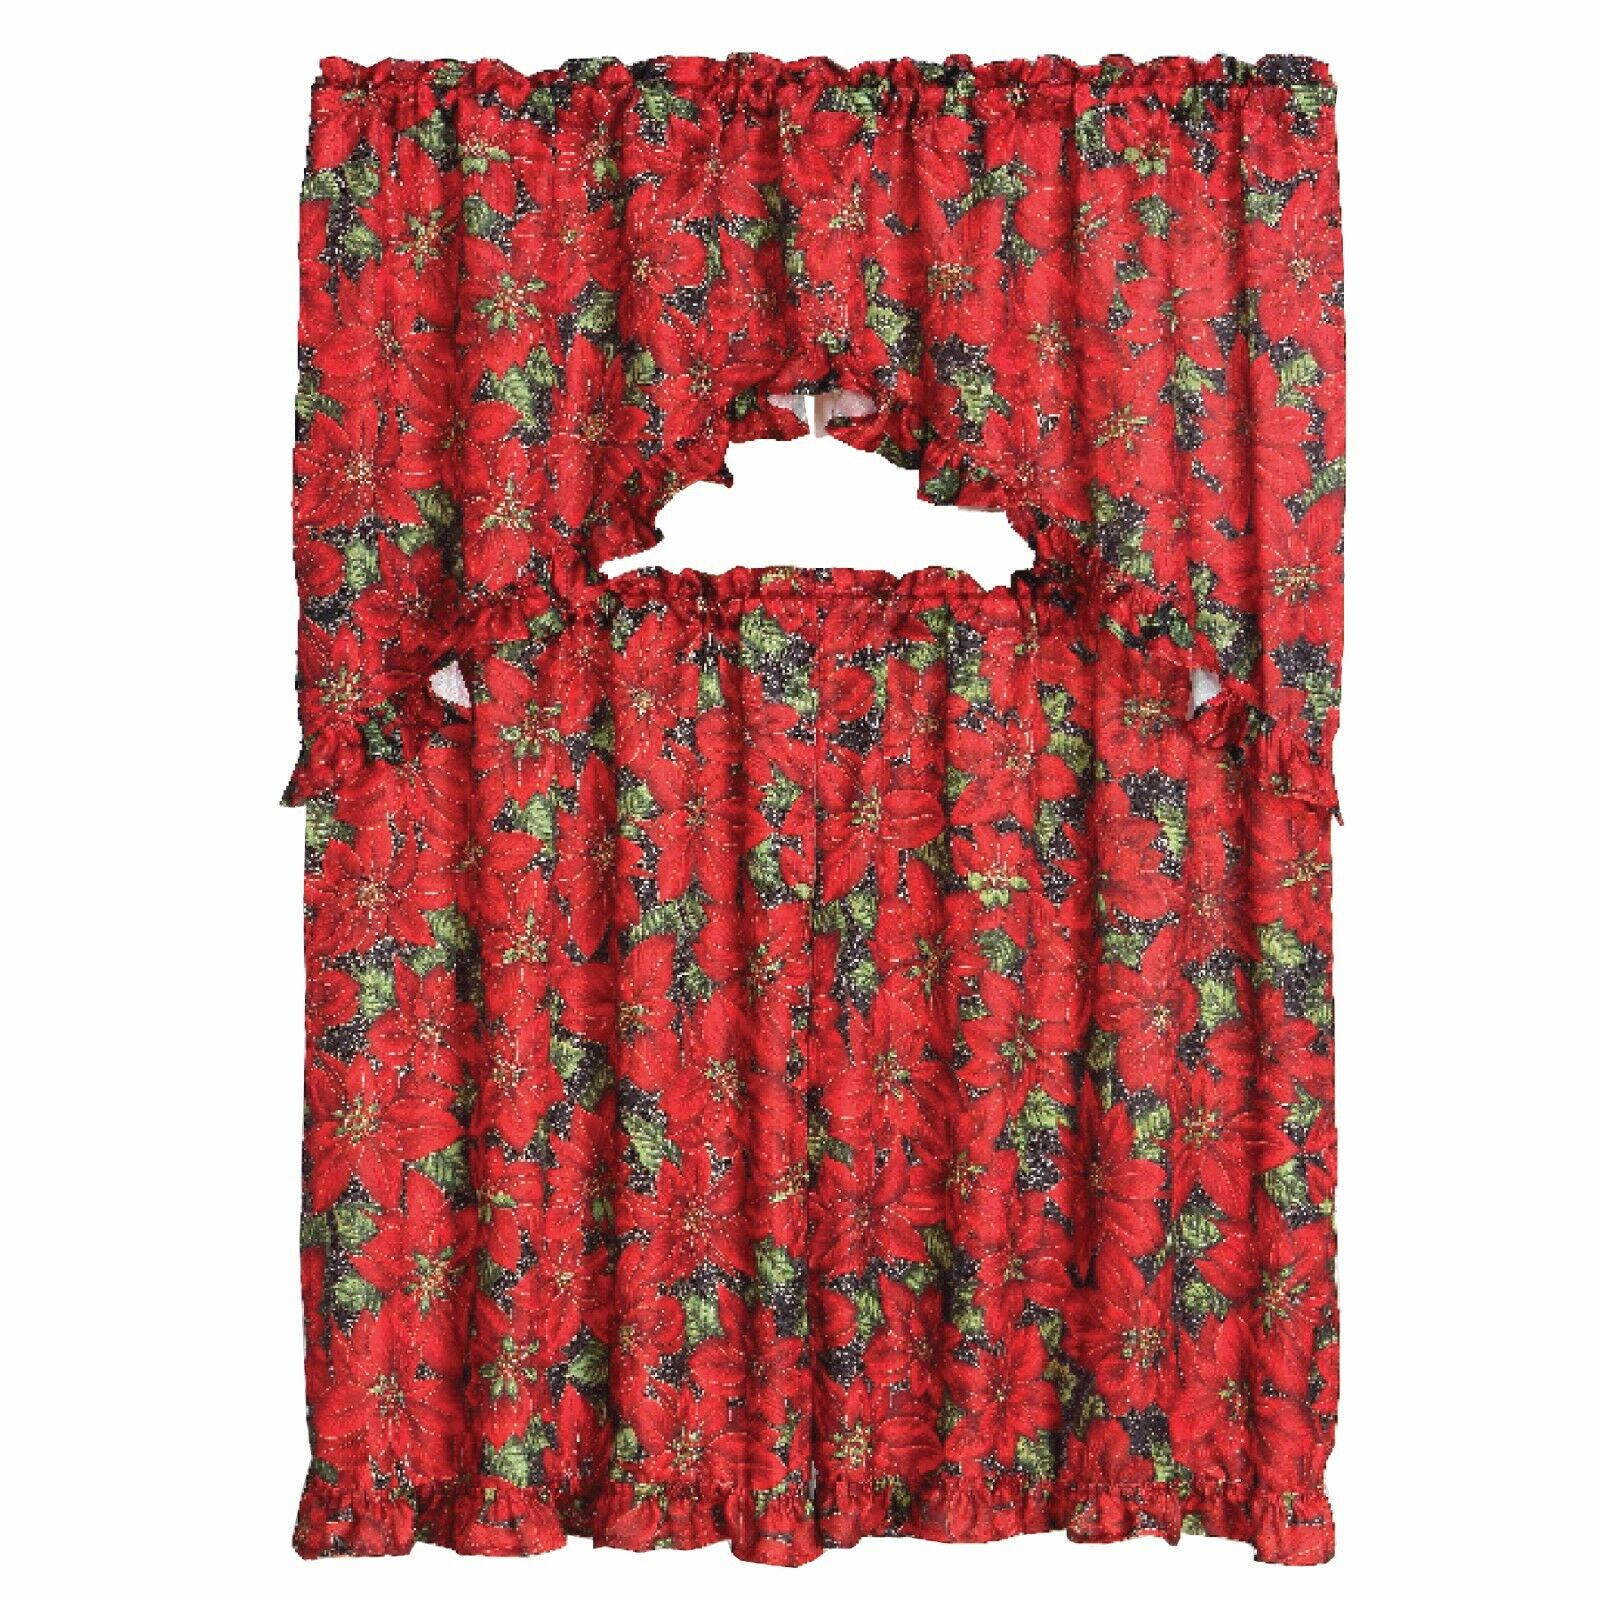 3 Piece Christmas Decorative Kitchen Curtain Set Ruffled Swag Valance Amp Tiers EBay